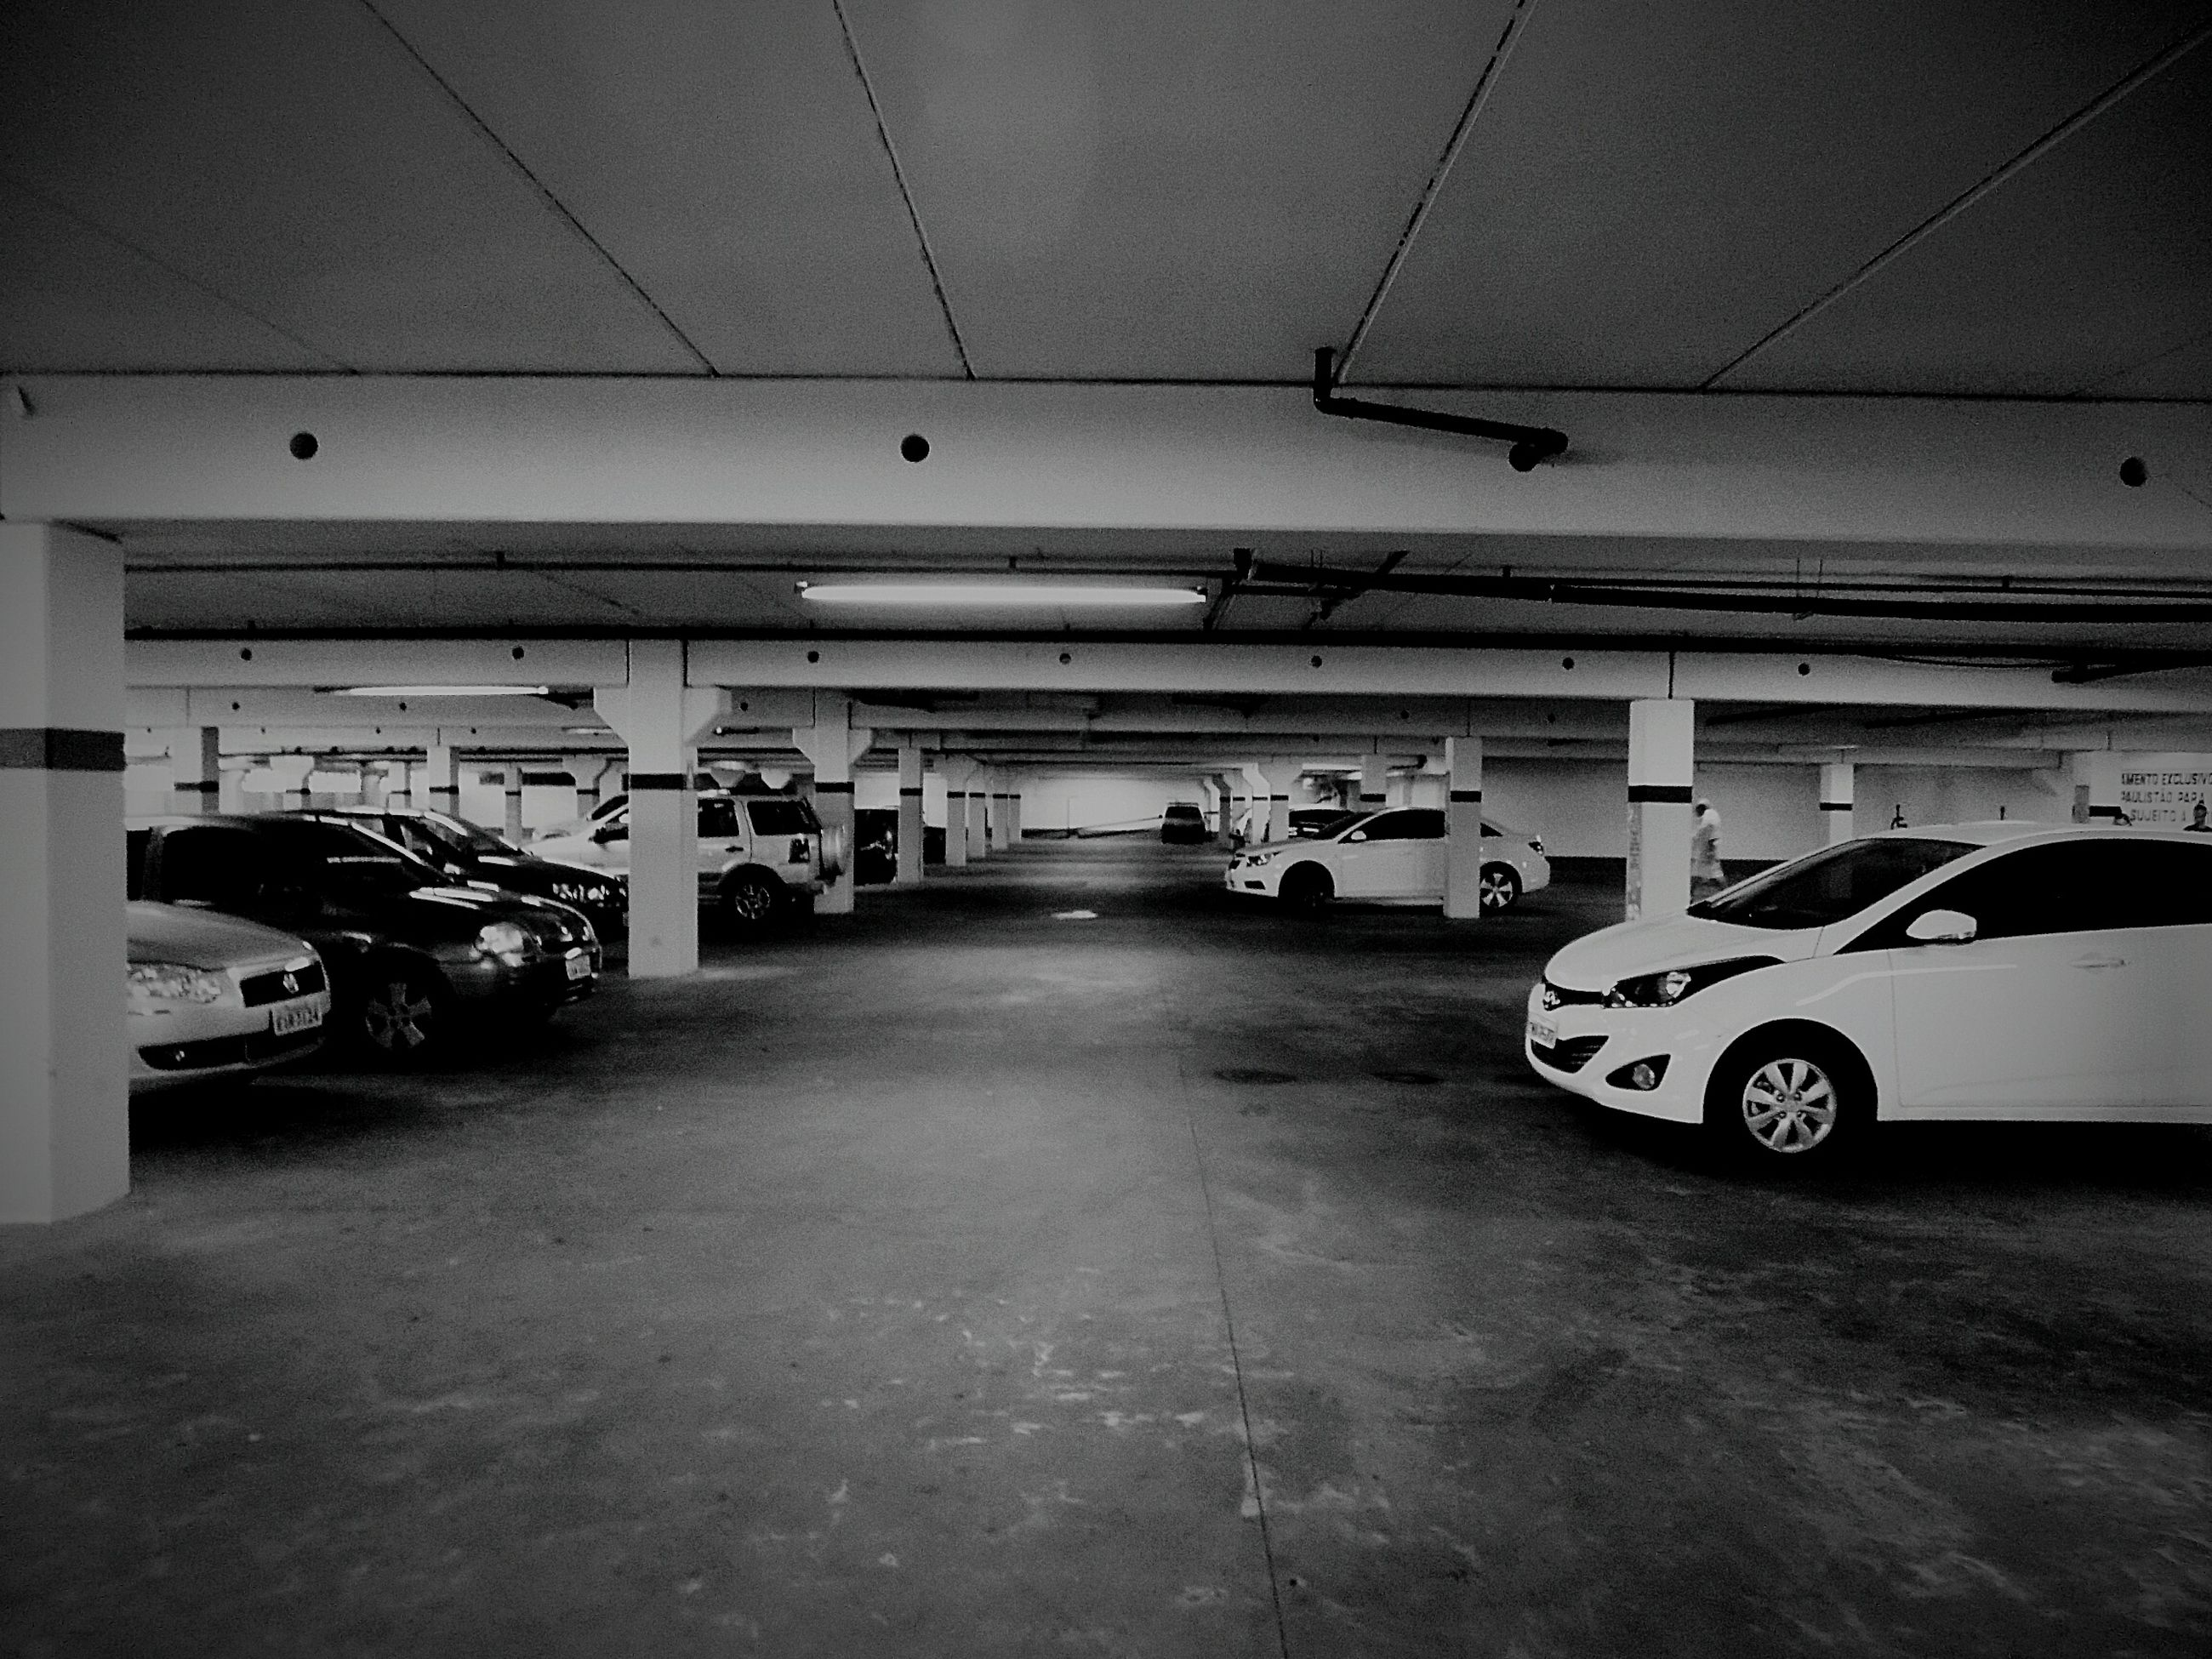 transportation, mode of transport, land vehicle, architecture, built structure, the way forward, travel, car, street, stationary, indoors, road, parking, diminishing perspective, bicycle, incidental people, parking lot, empty, public transportation, day